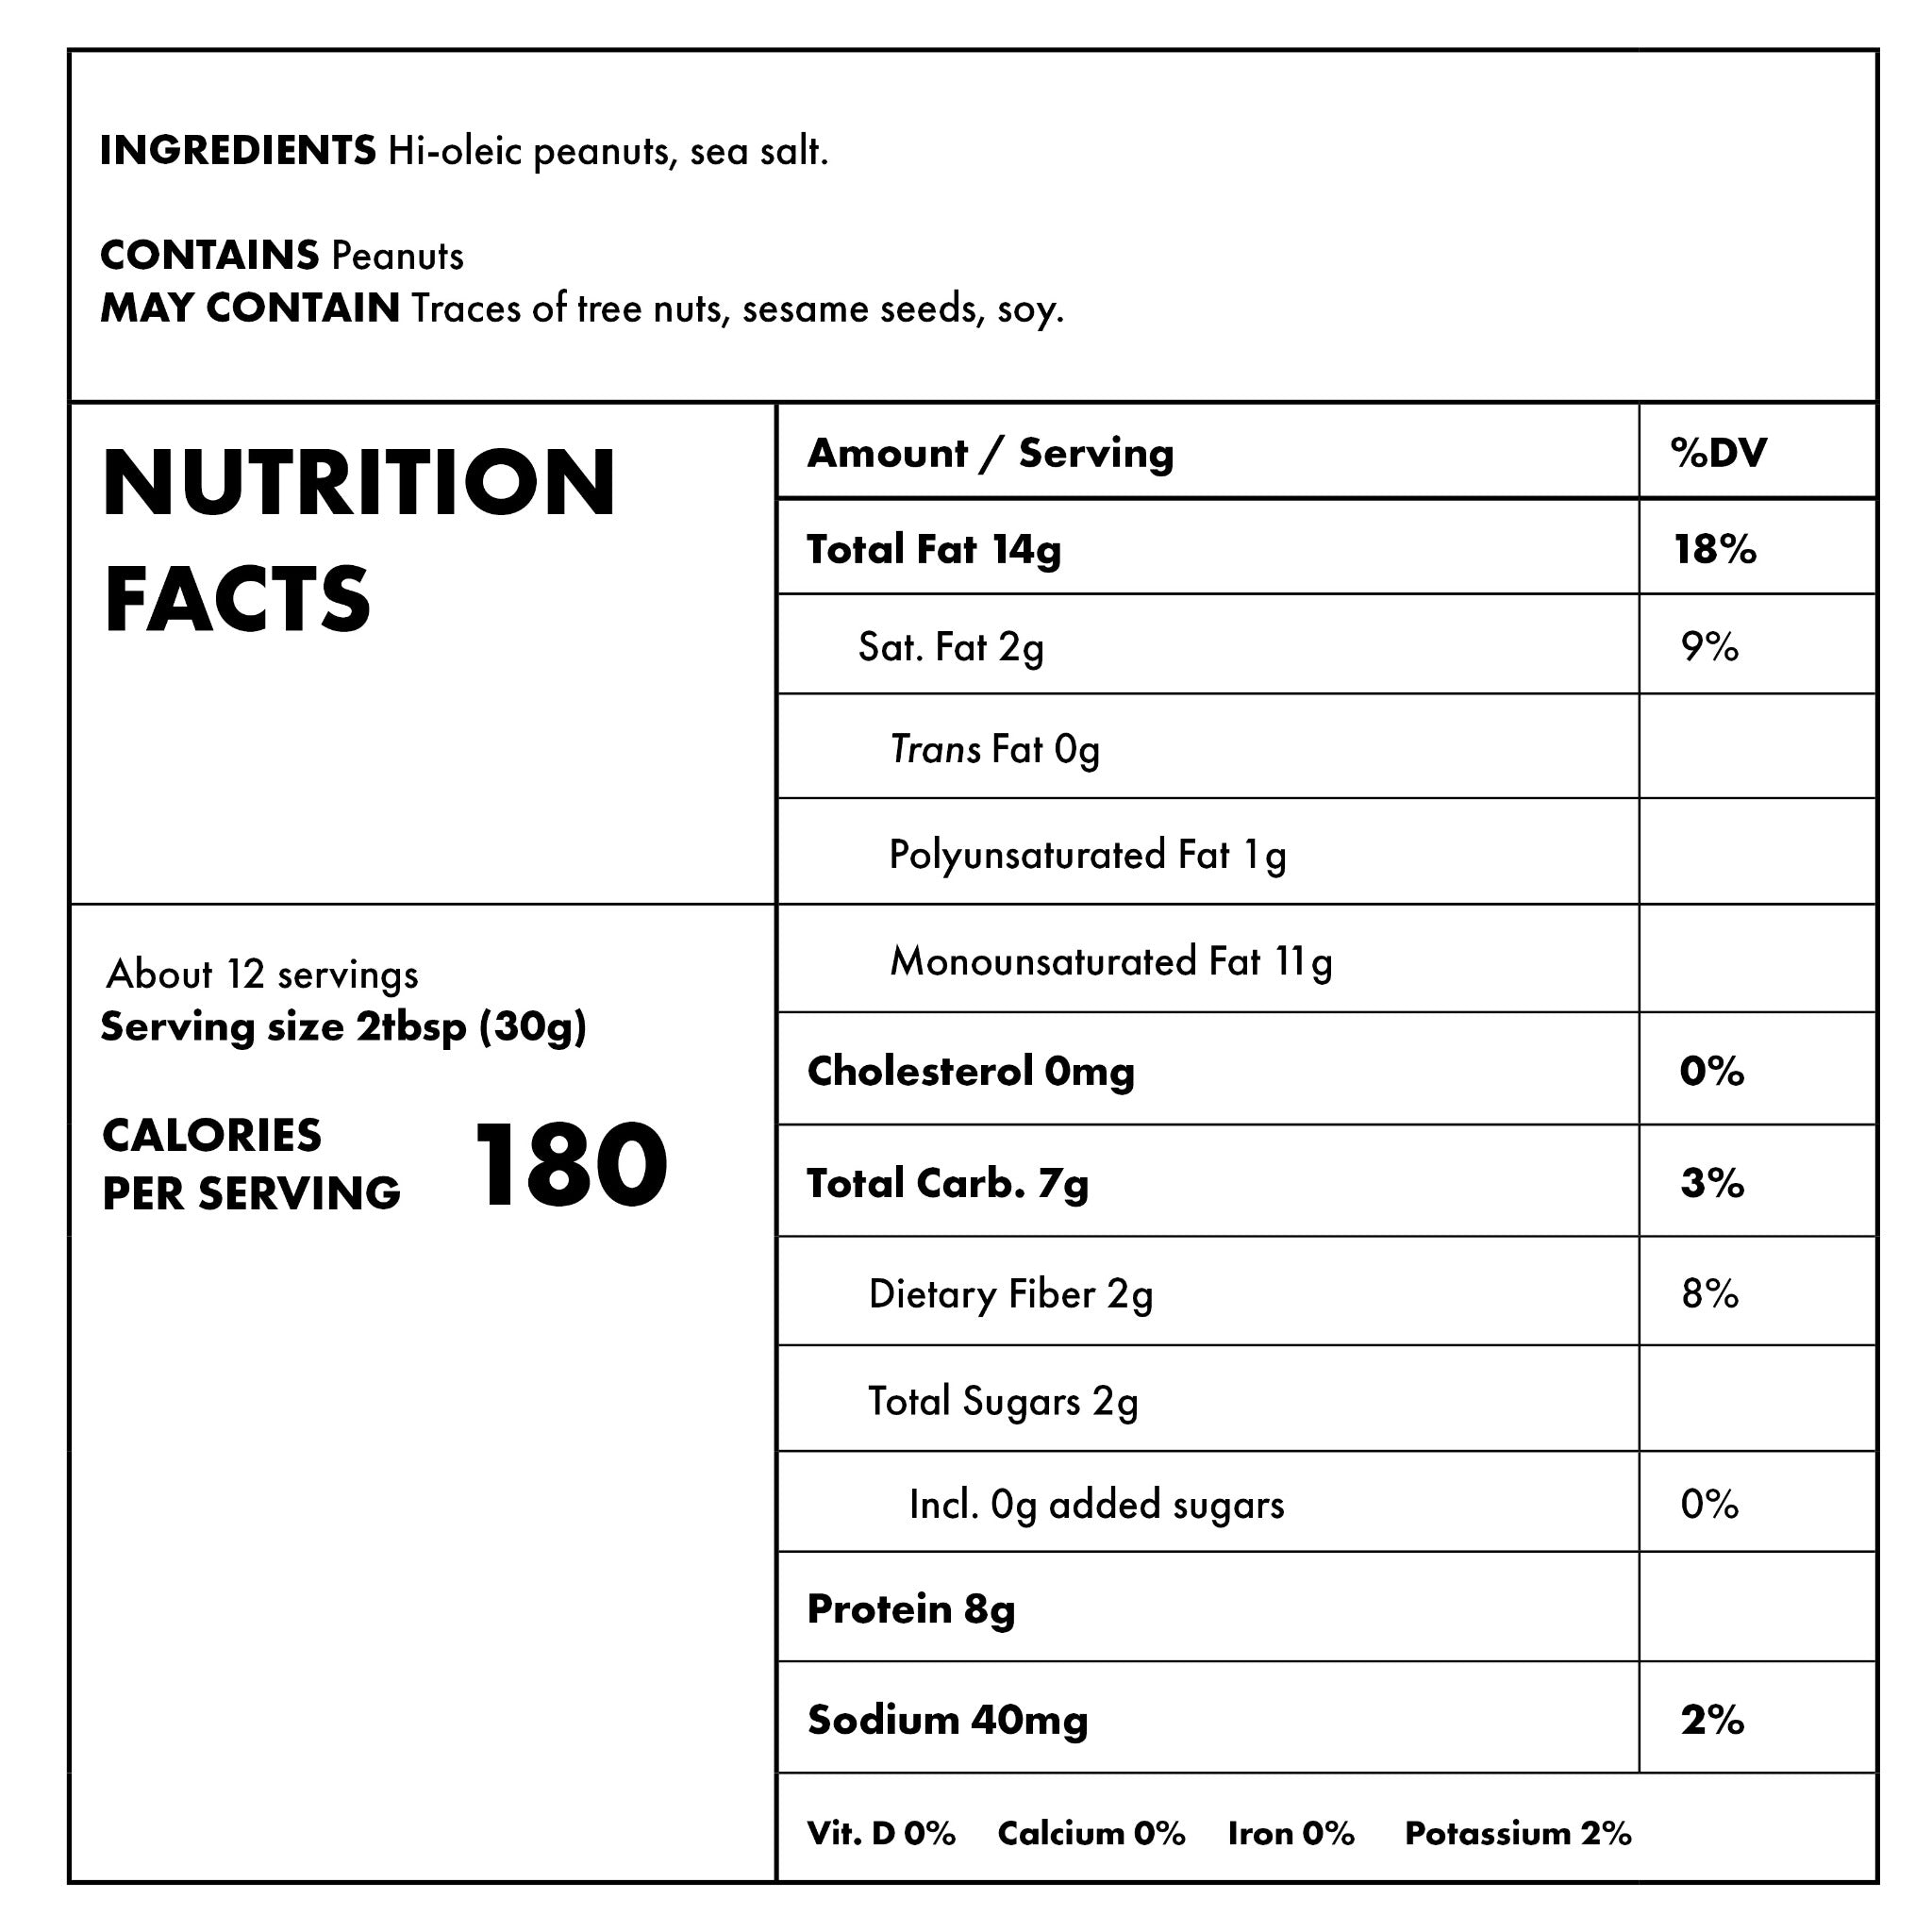 Super Crunchy Nutritional Information